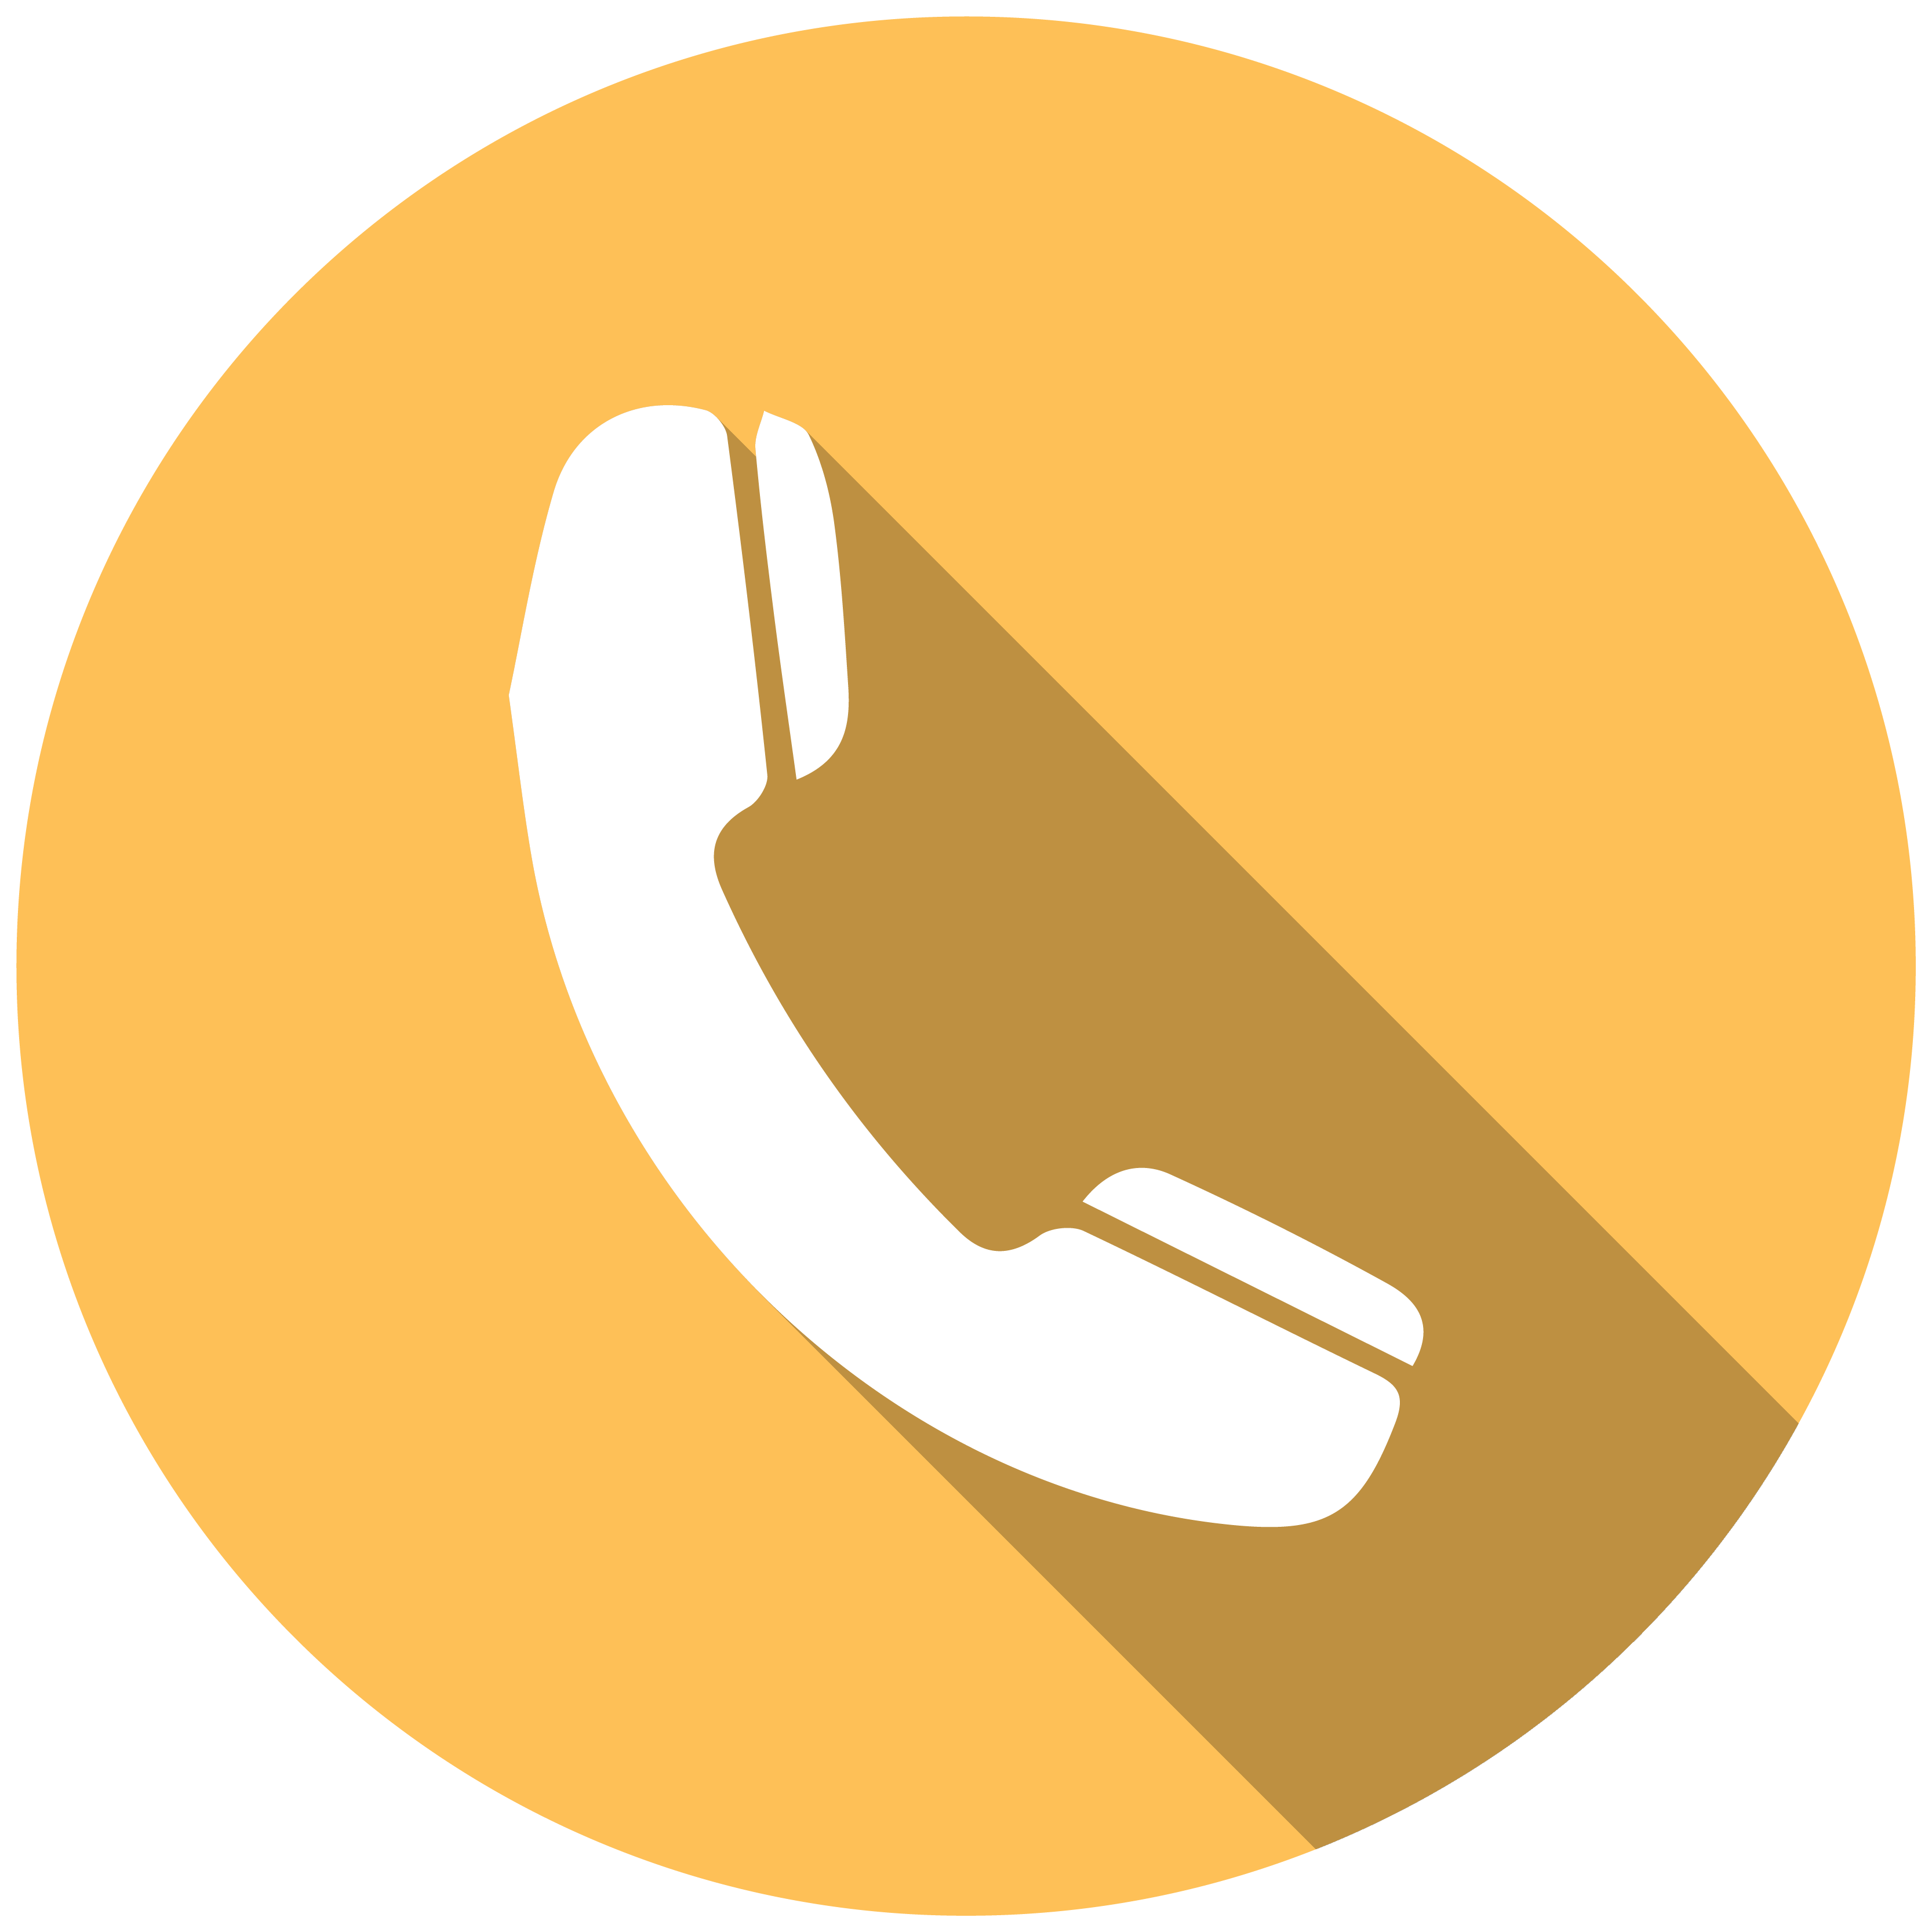 Telephone clipart phone orange. Download free png transparent